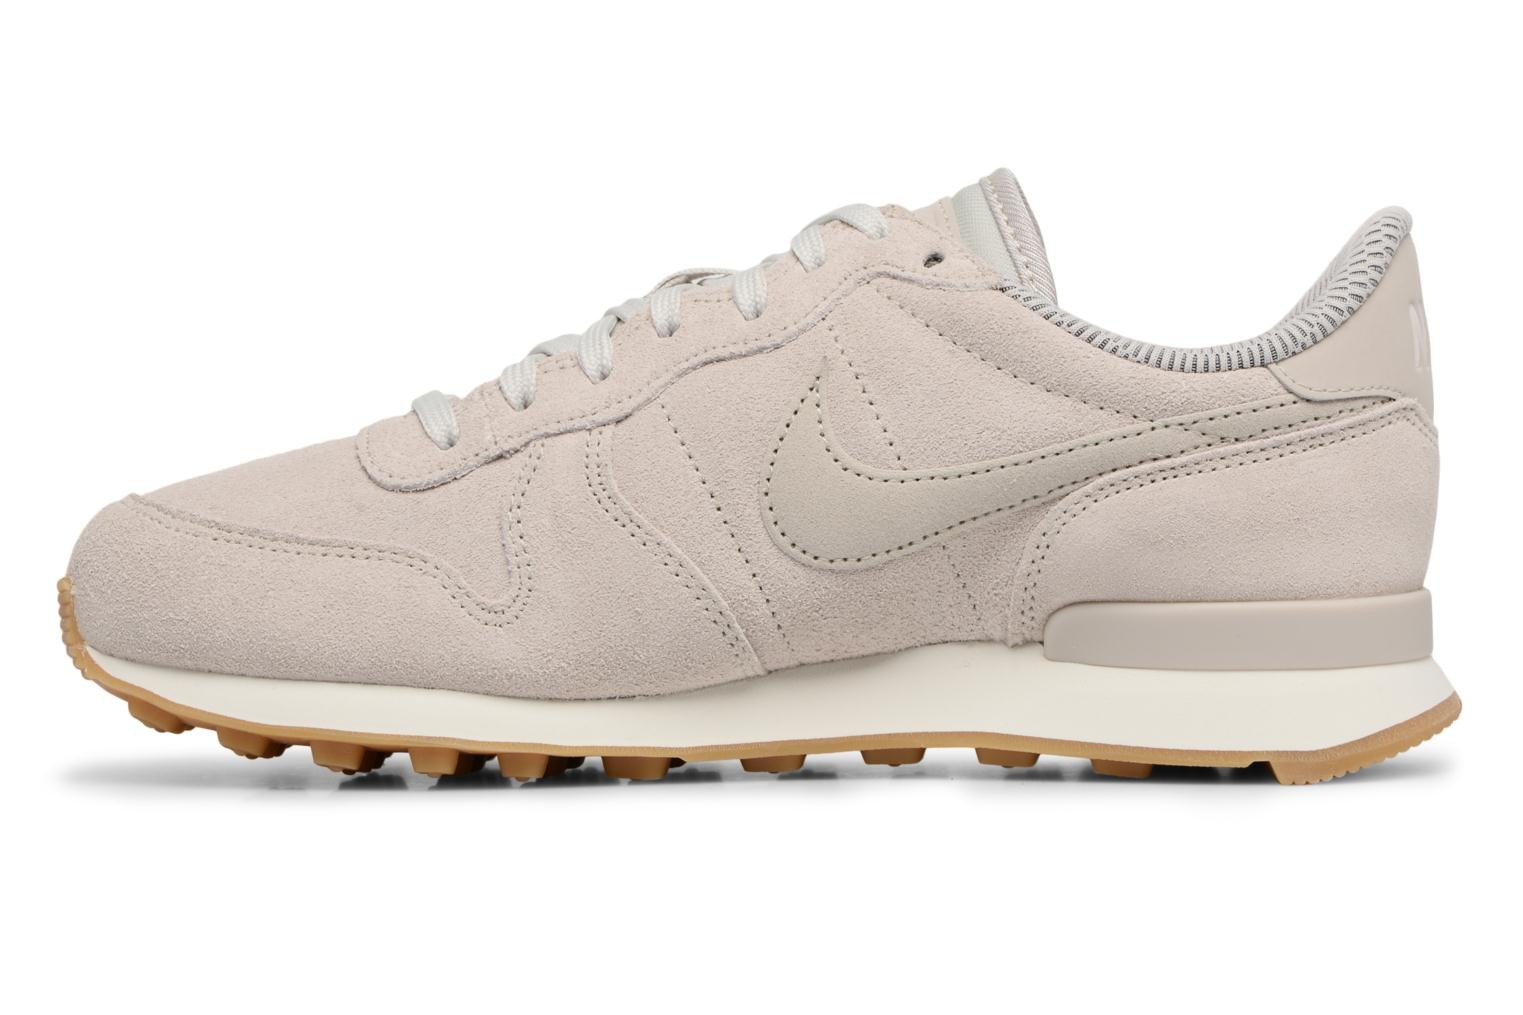 Light Bone Internationalist Light Phantom Nike Se W Sail Bone fnYpqpF4X